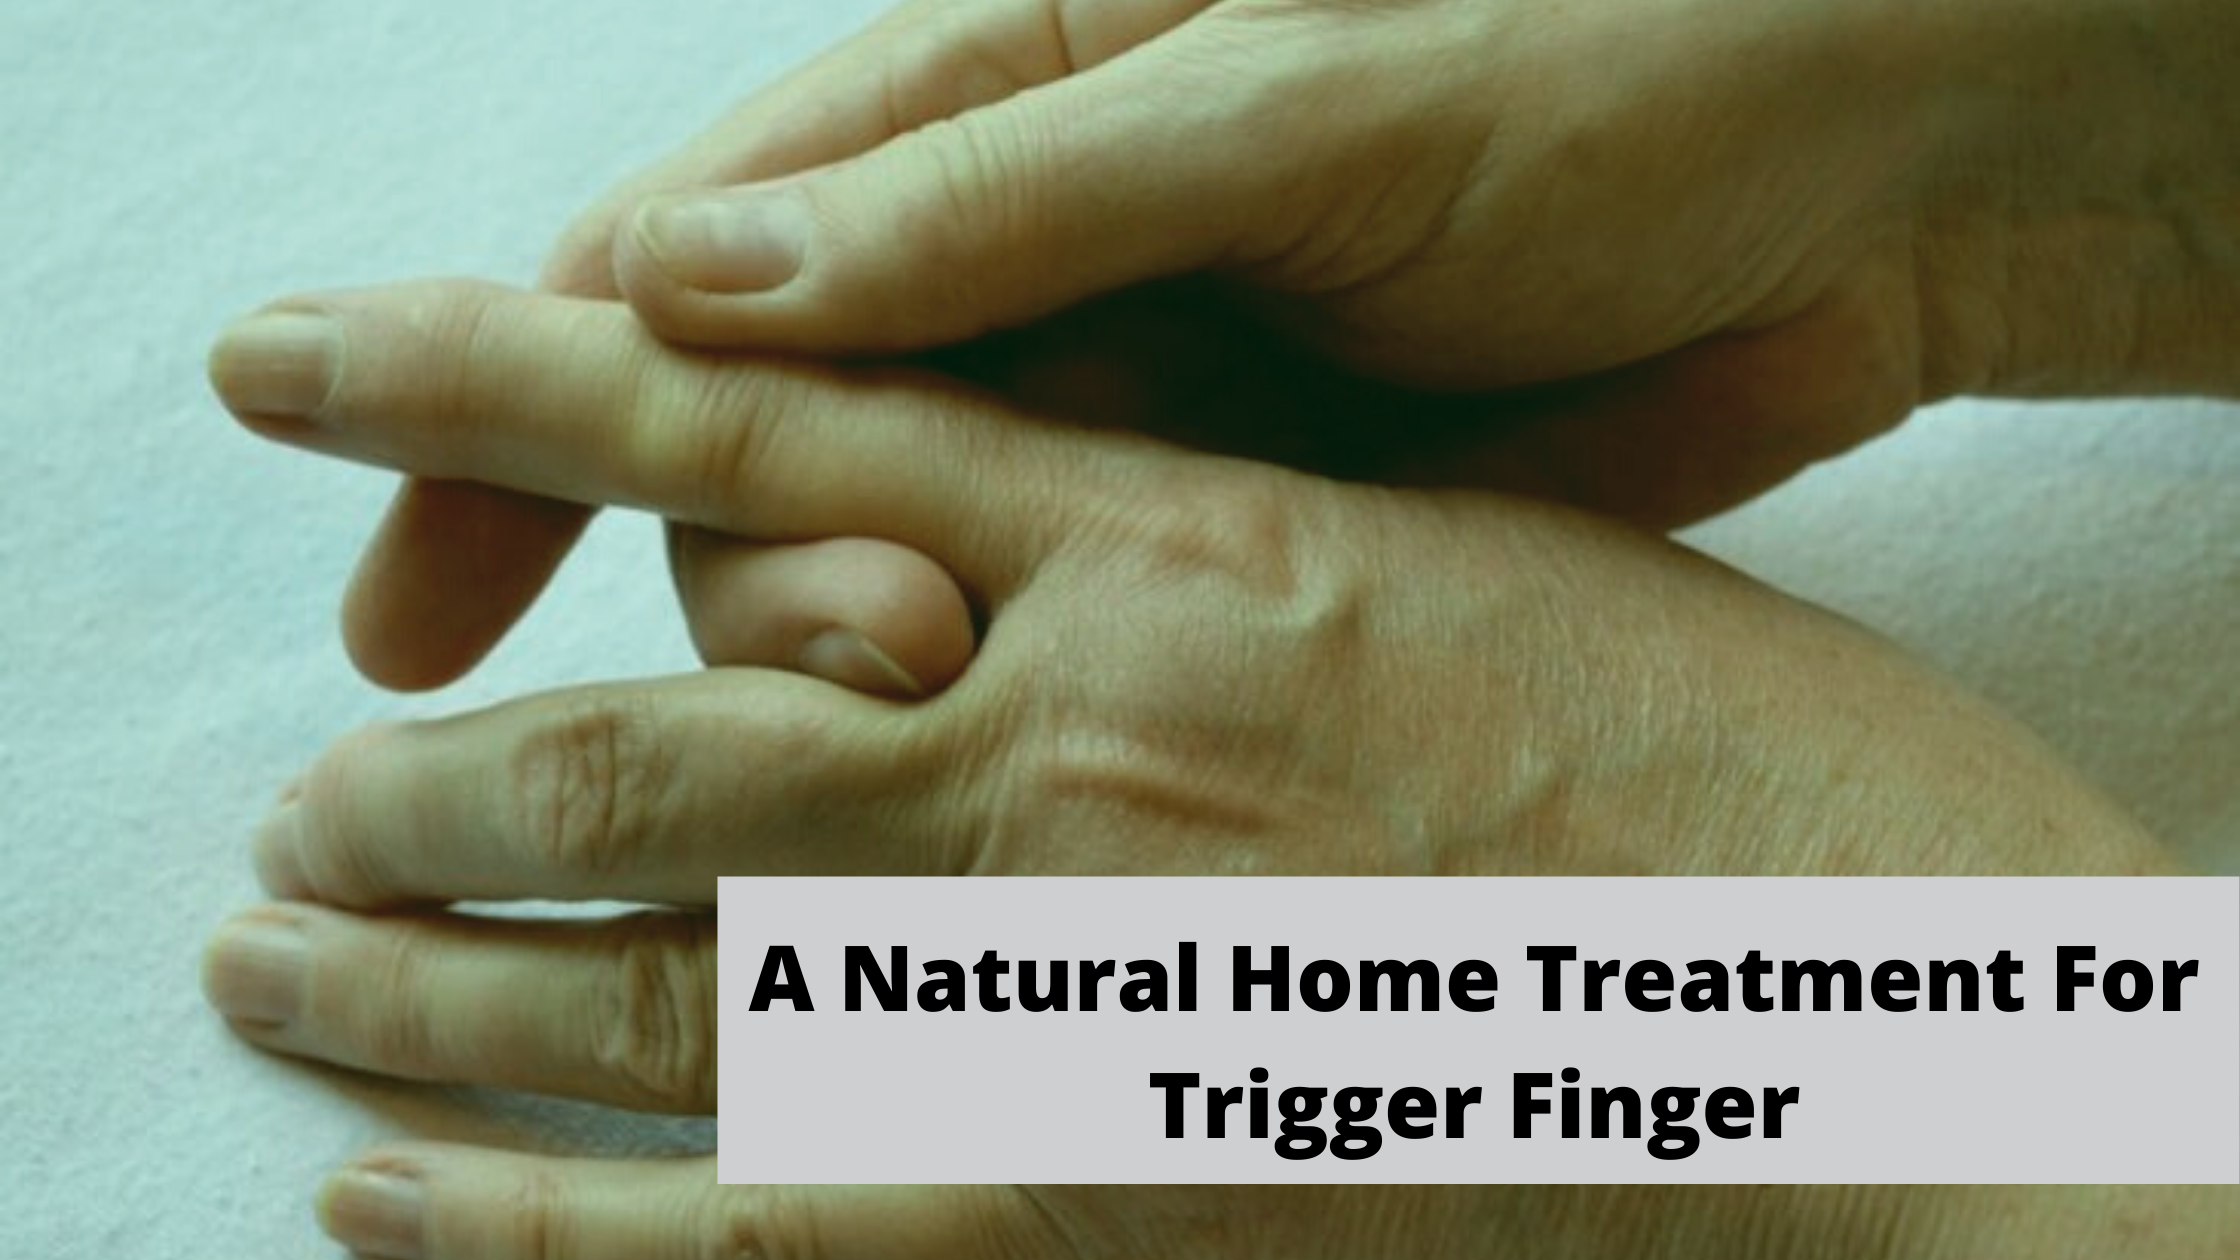 A Natural Home Treatment For Trigger Finger